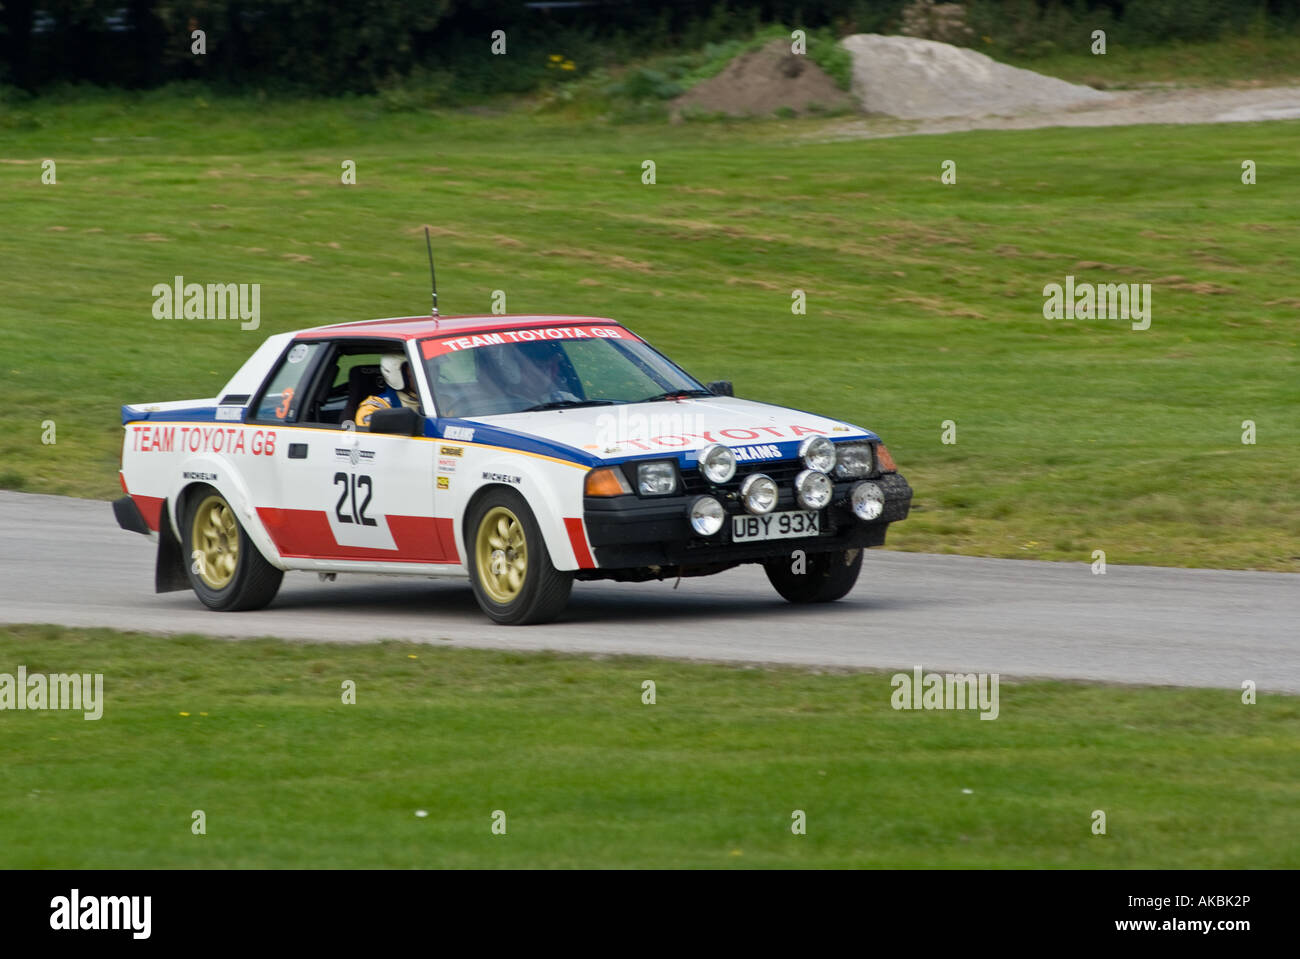 Toyota Celica Group B Historic Rally Car at Oulton Park Motor ...